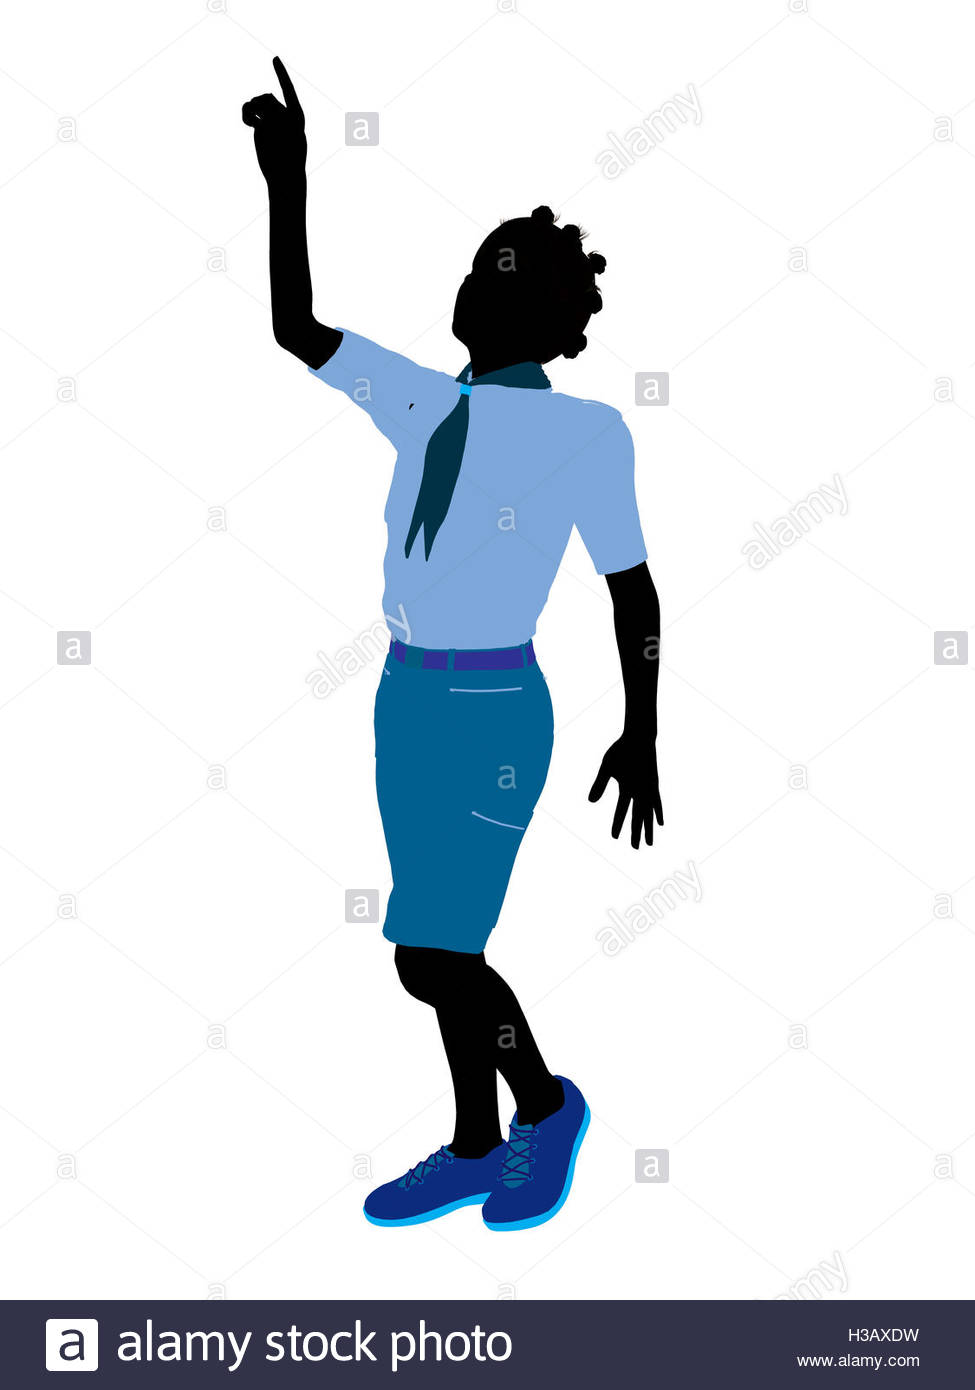 975x1390 African American Girl Scout Illustration Silhouette Stock Photo